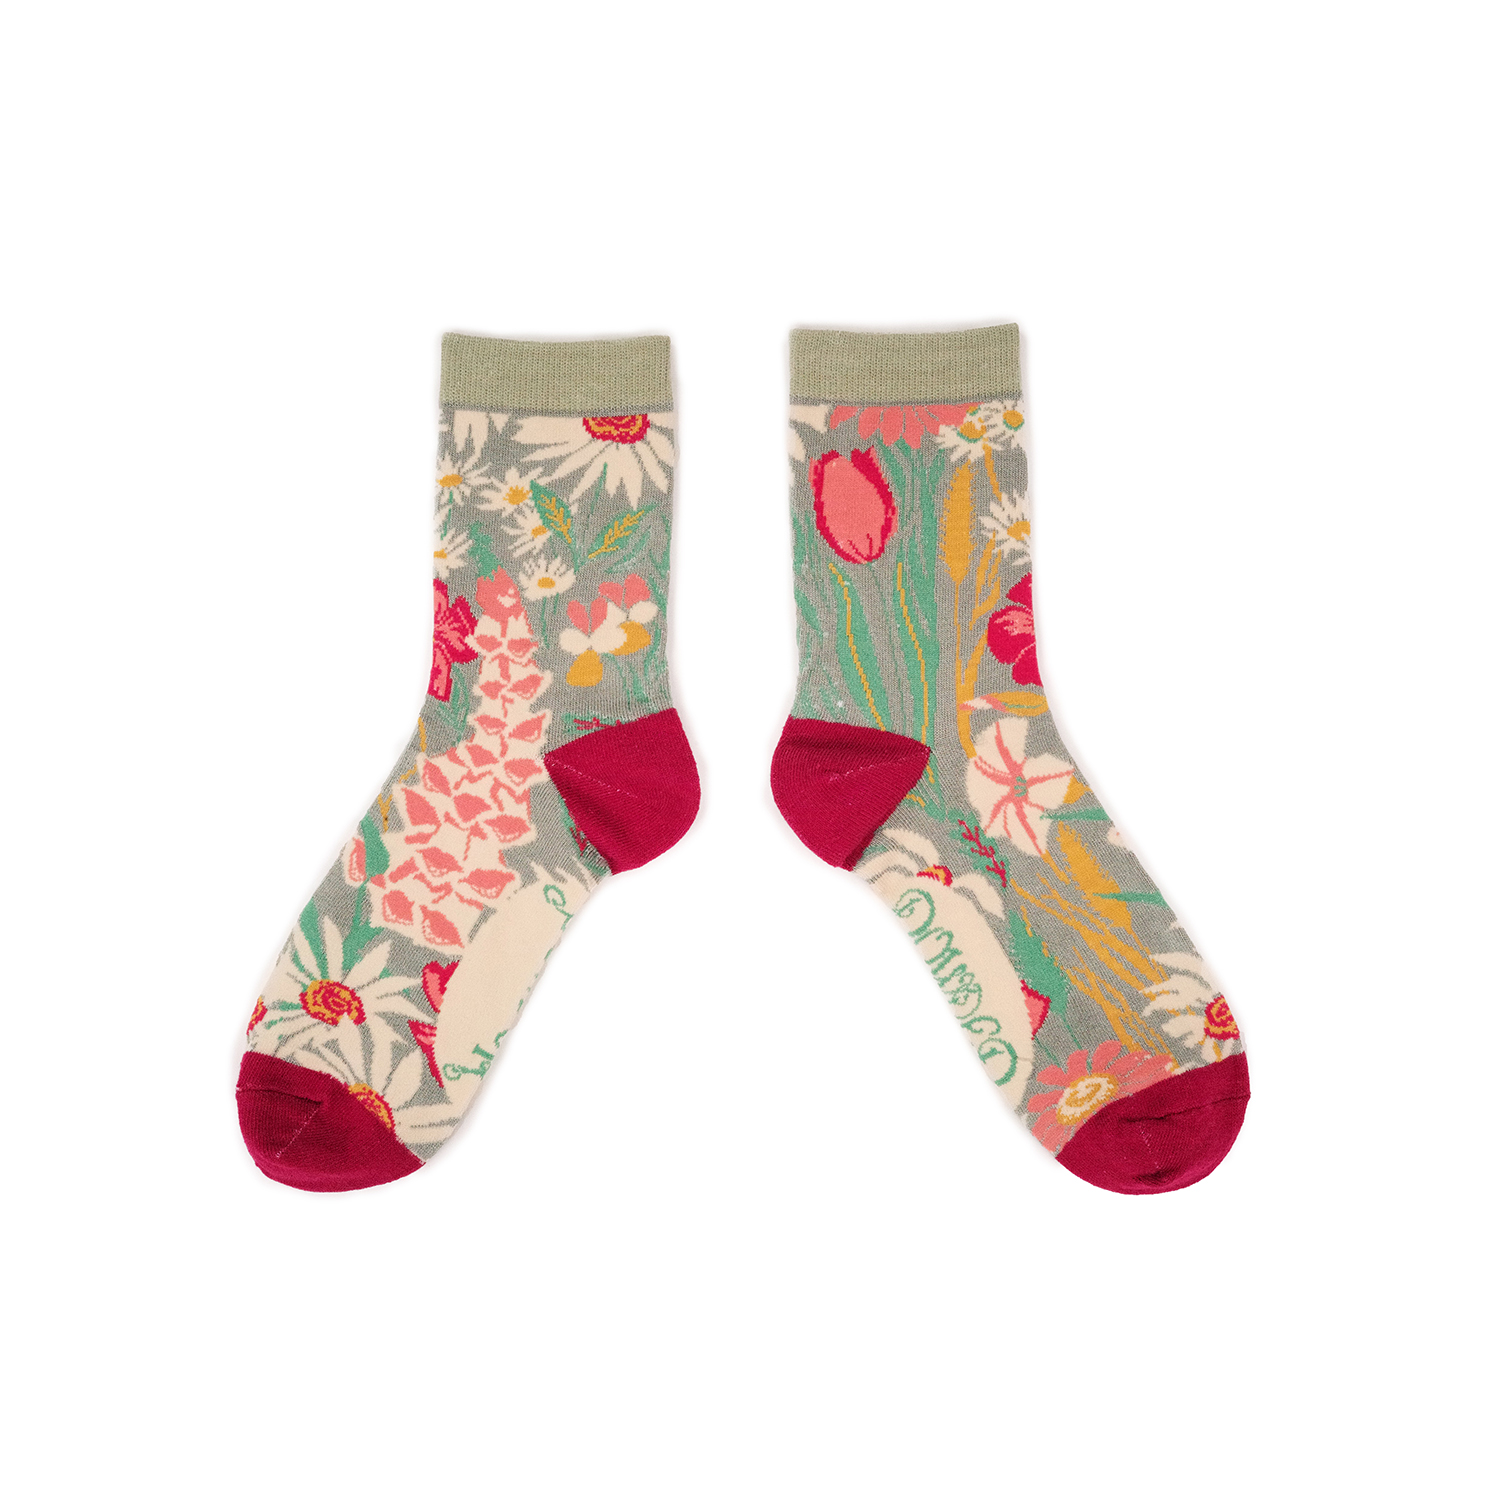 Powder – Mint Country Garden Ankle Socks with Presentation Gift Bag